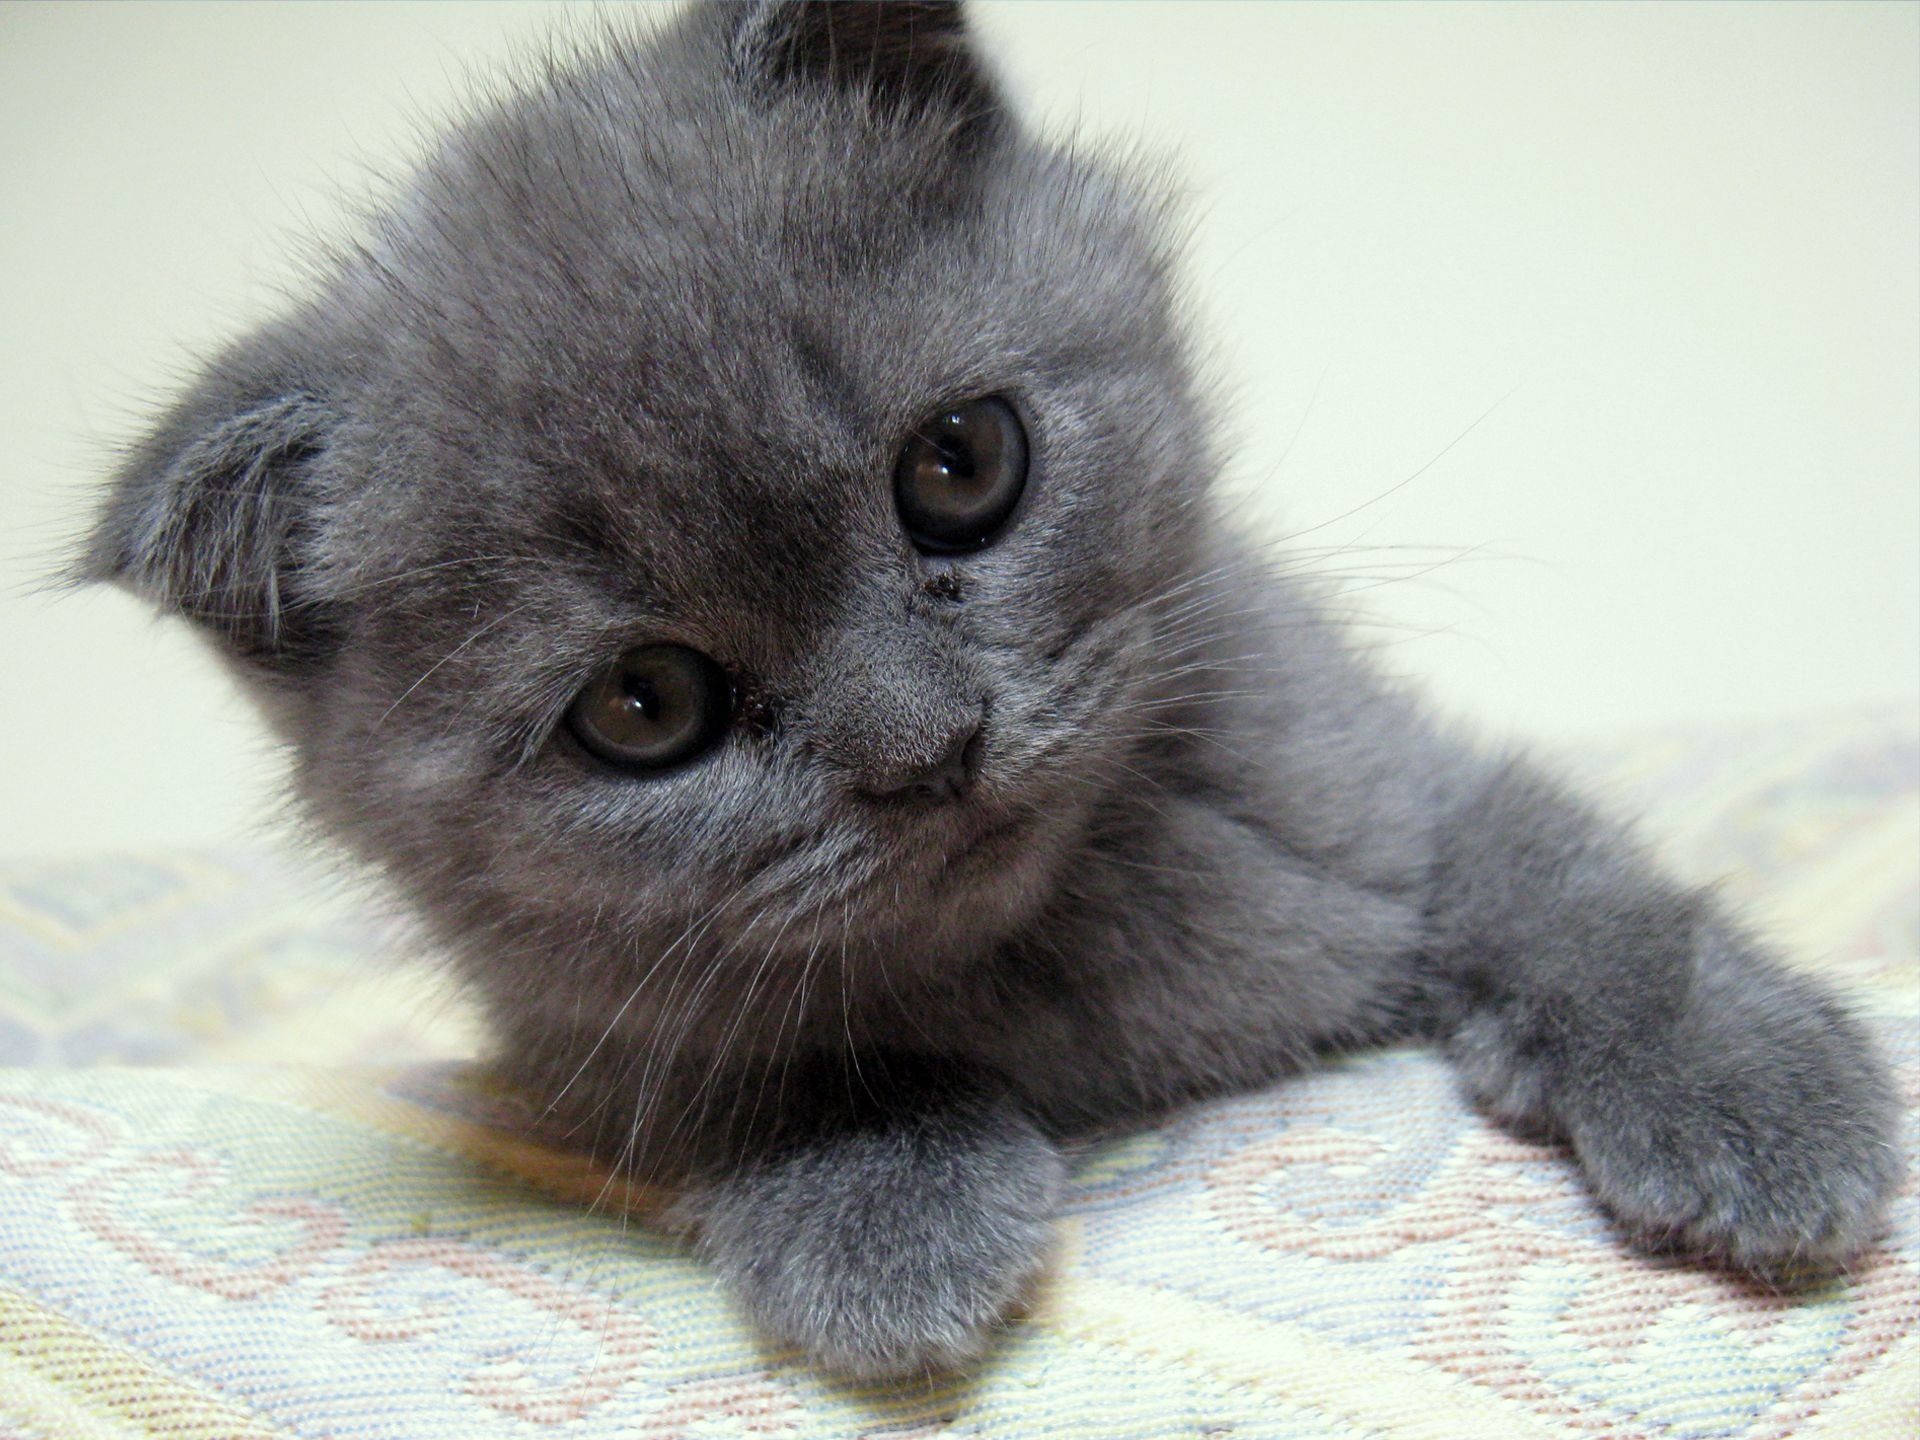 105355 download wallpaper Animals, Kitty, Kitten, Muzzle, To Lie Down, Lie, Nice, Sweetheart screensavers and pictures for free